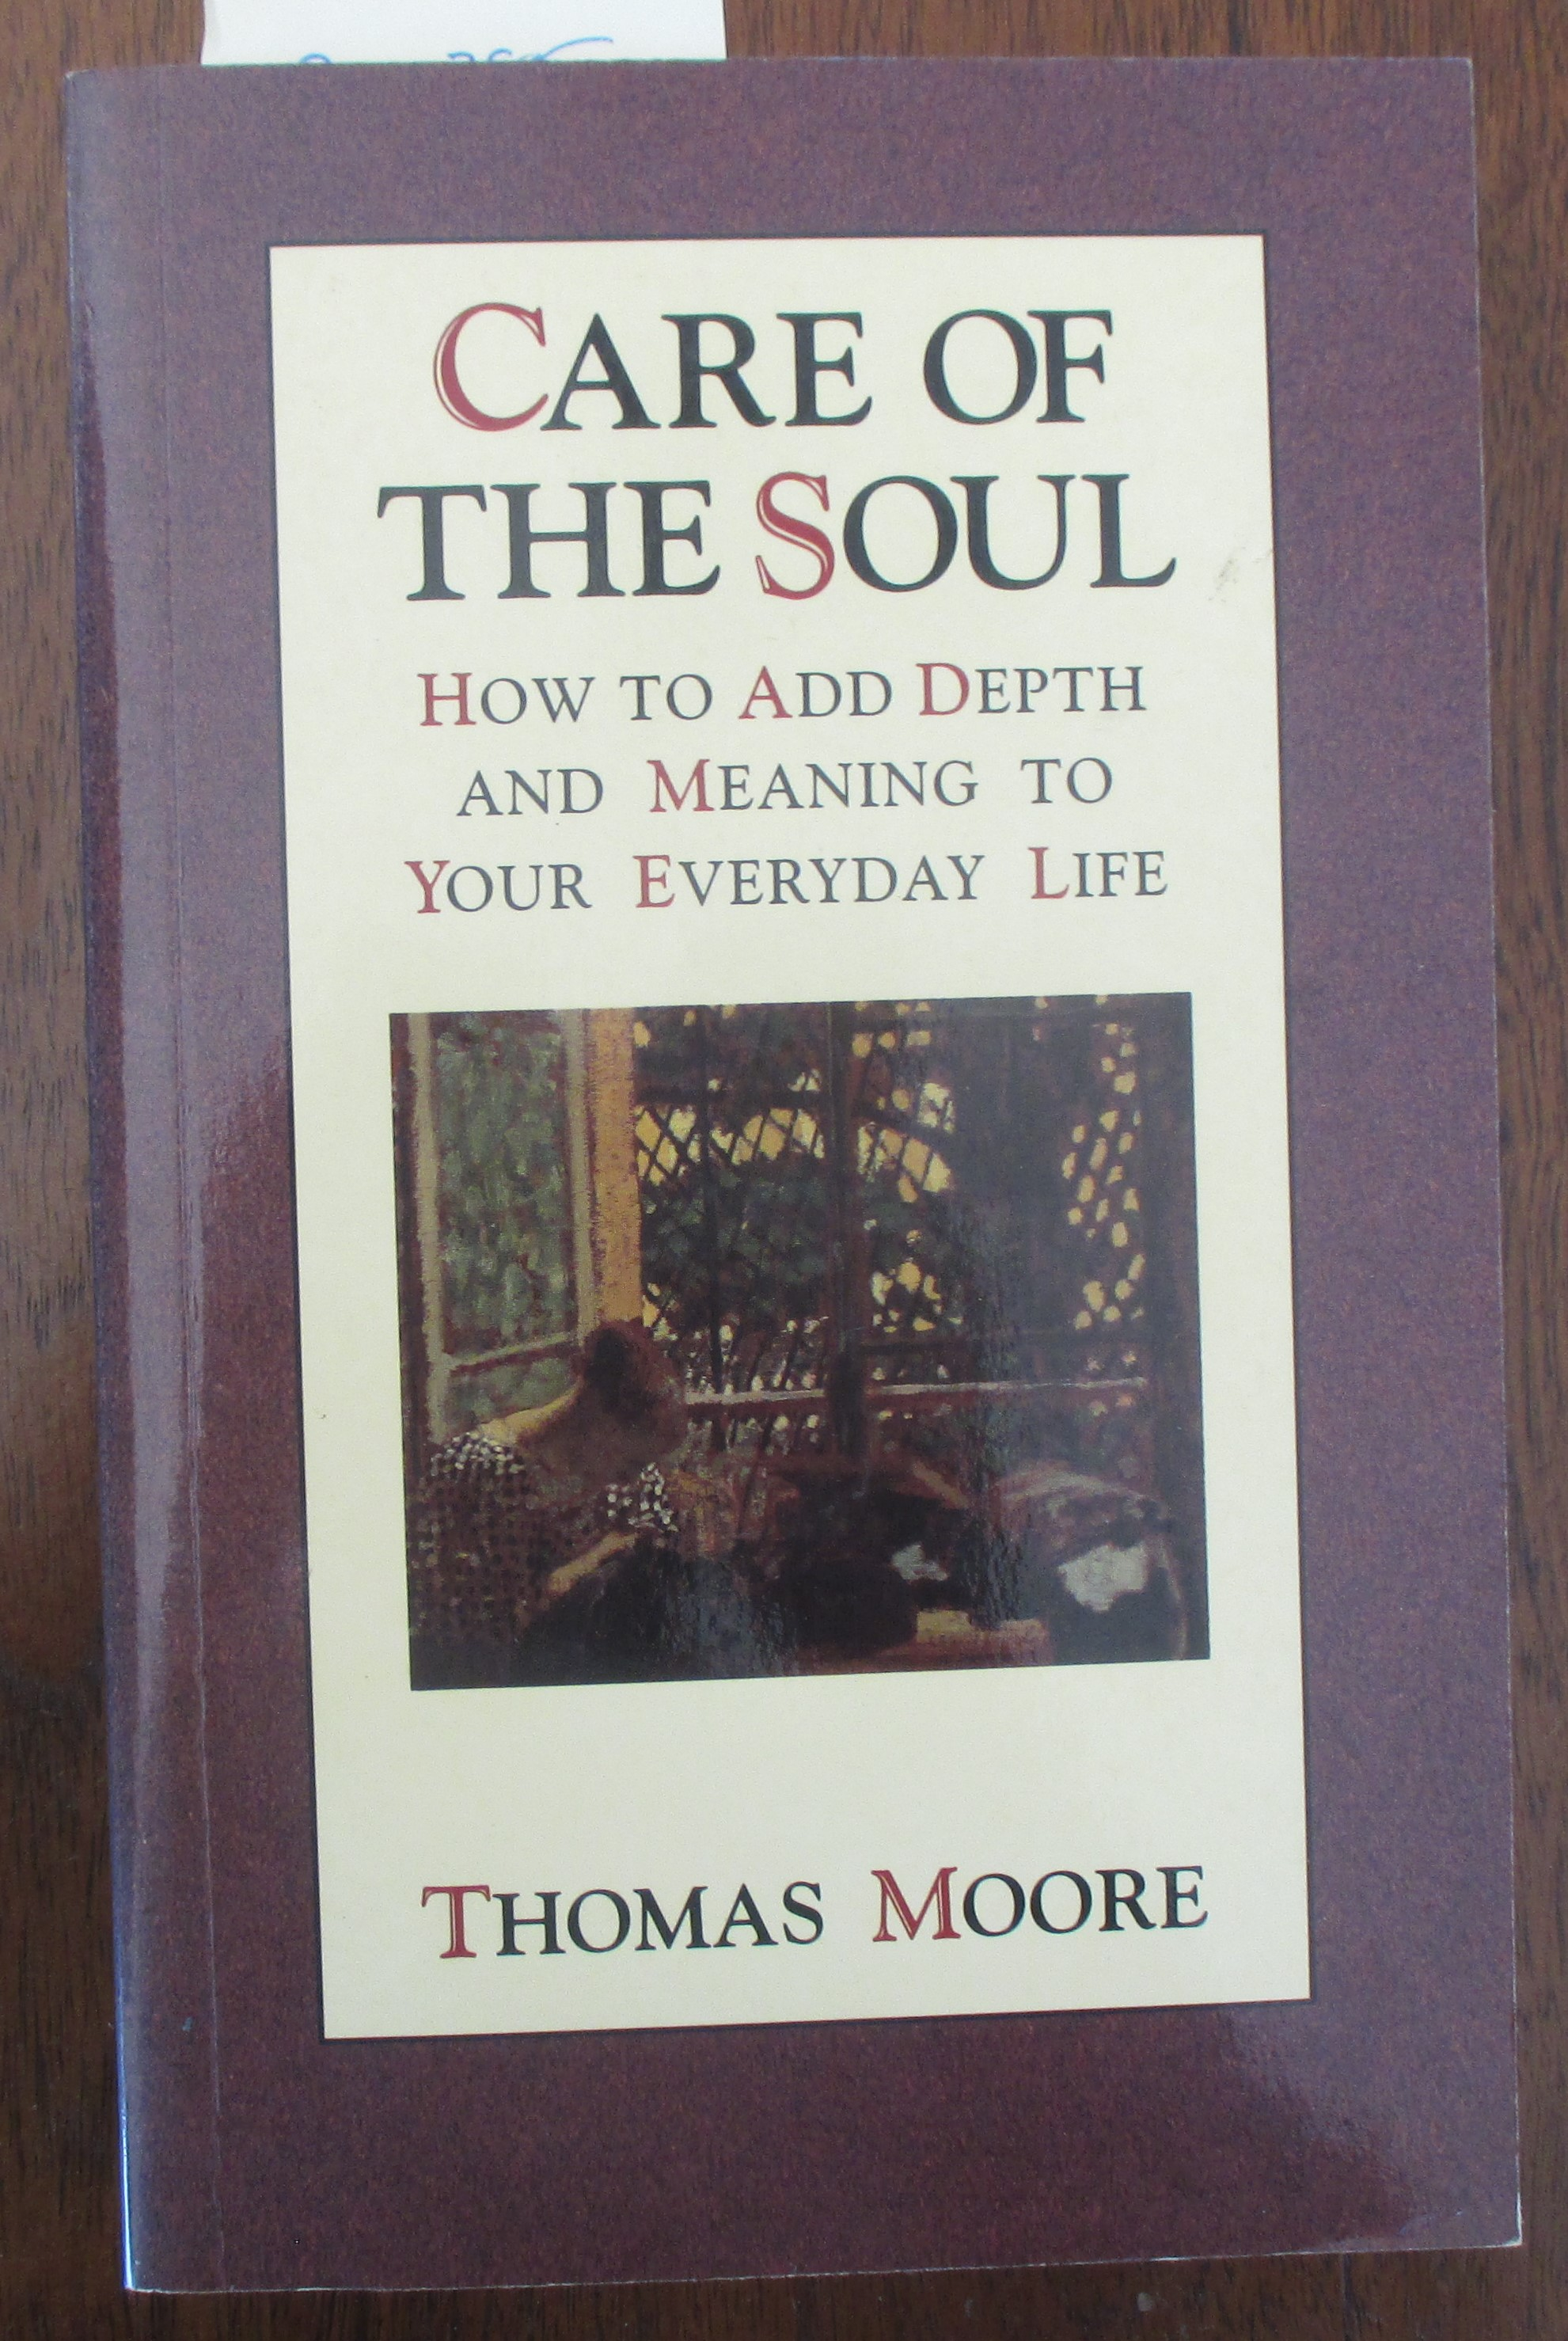 Image for Care of the Soul: How to Add Depth and Meaning to Your Everyday Life